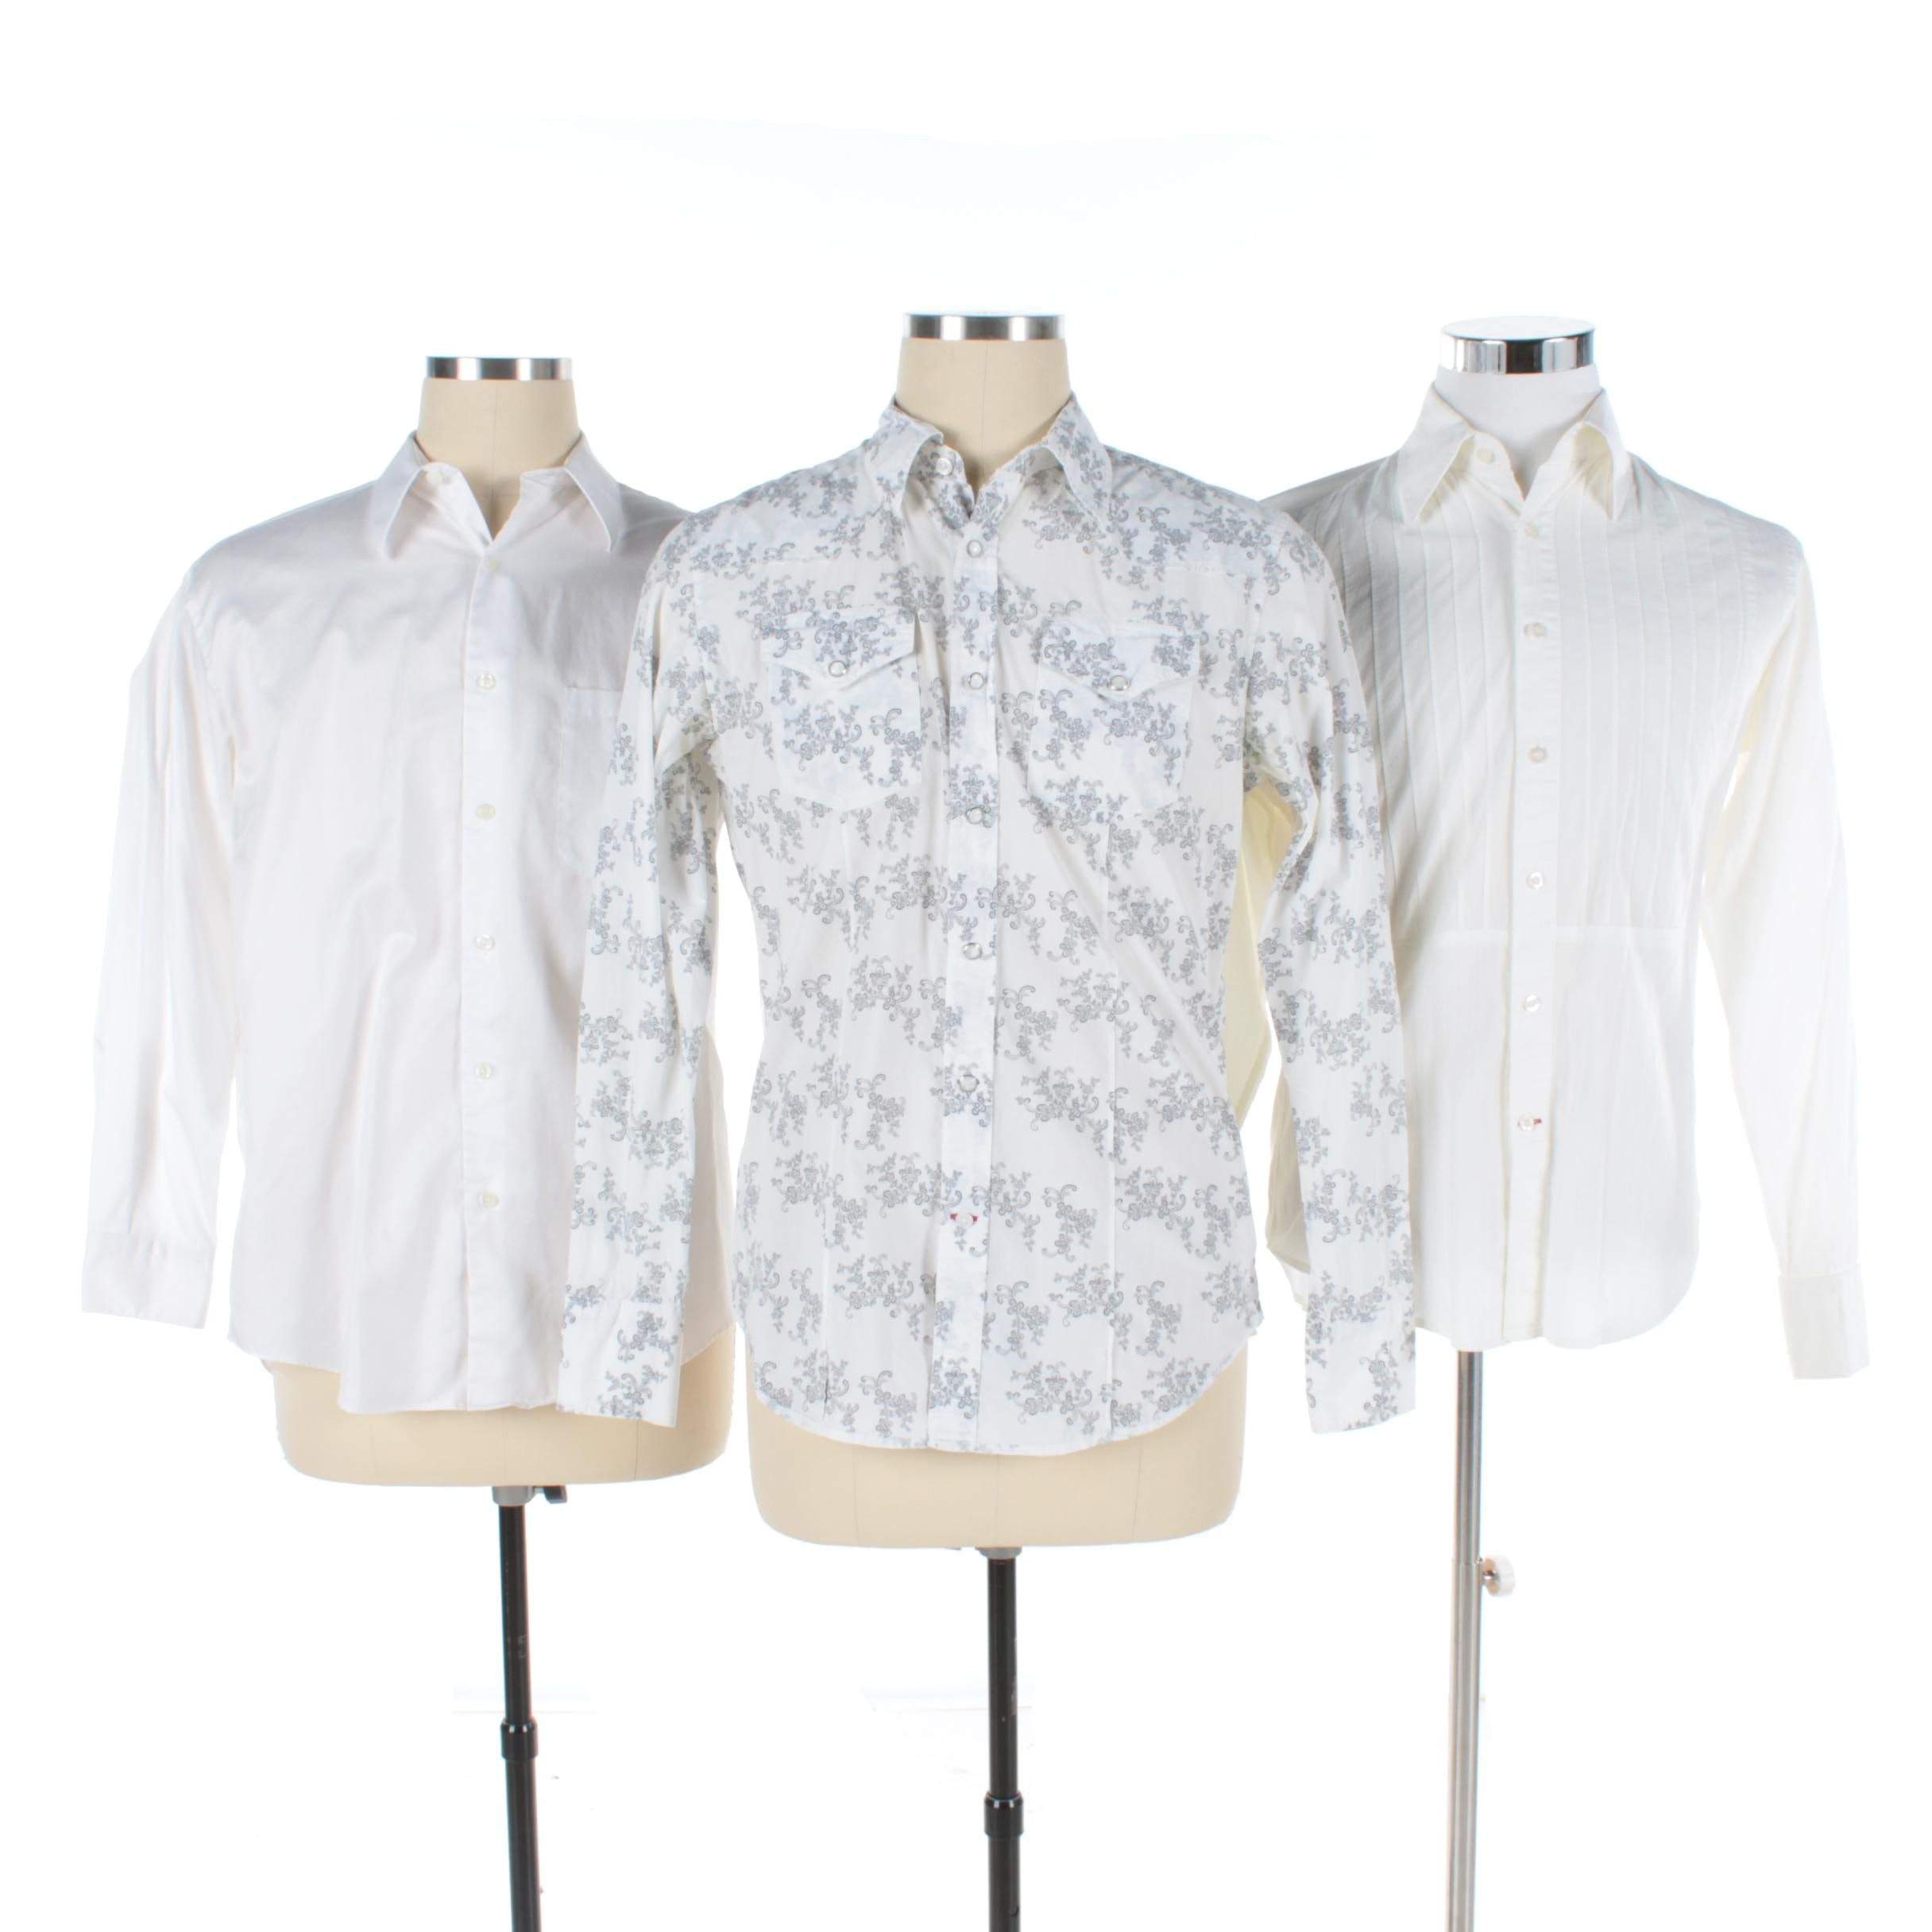 Men's Button-Front Shirts Including Guess by Marciano and Perry Ellis Portfolio